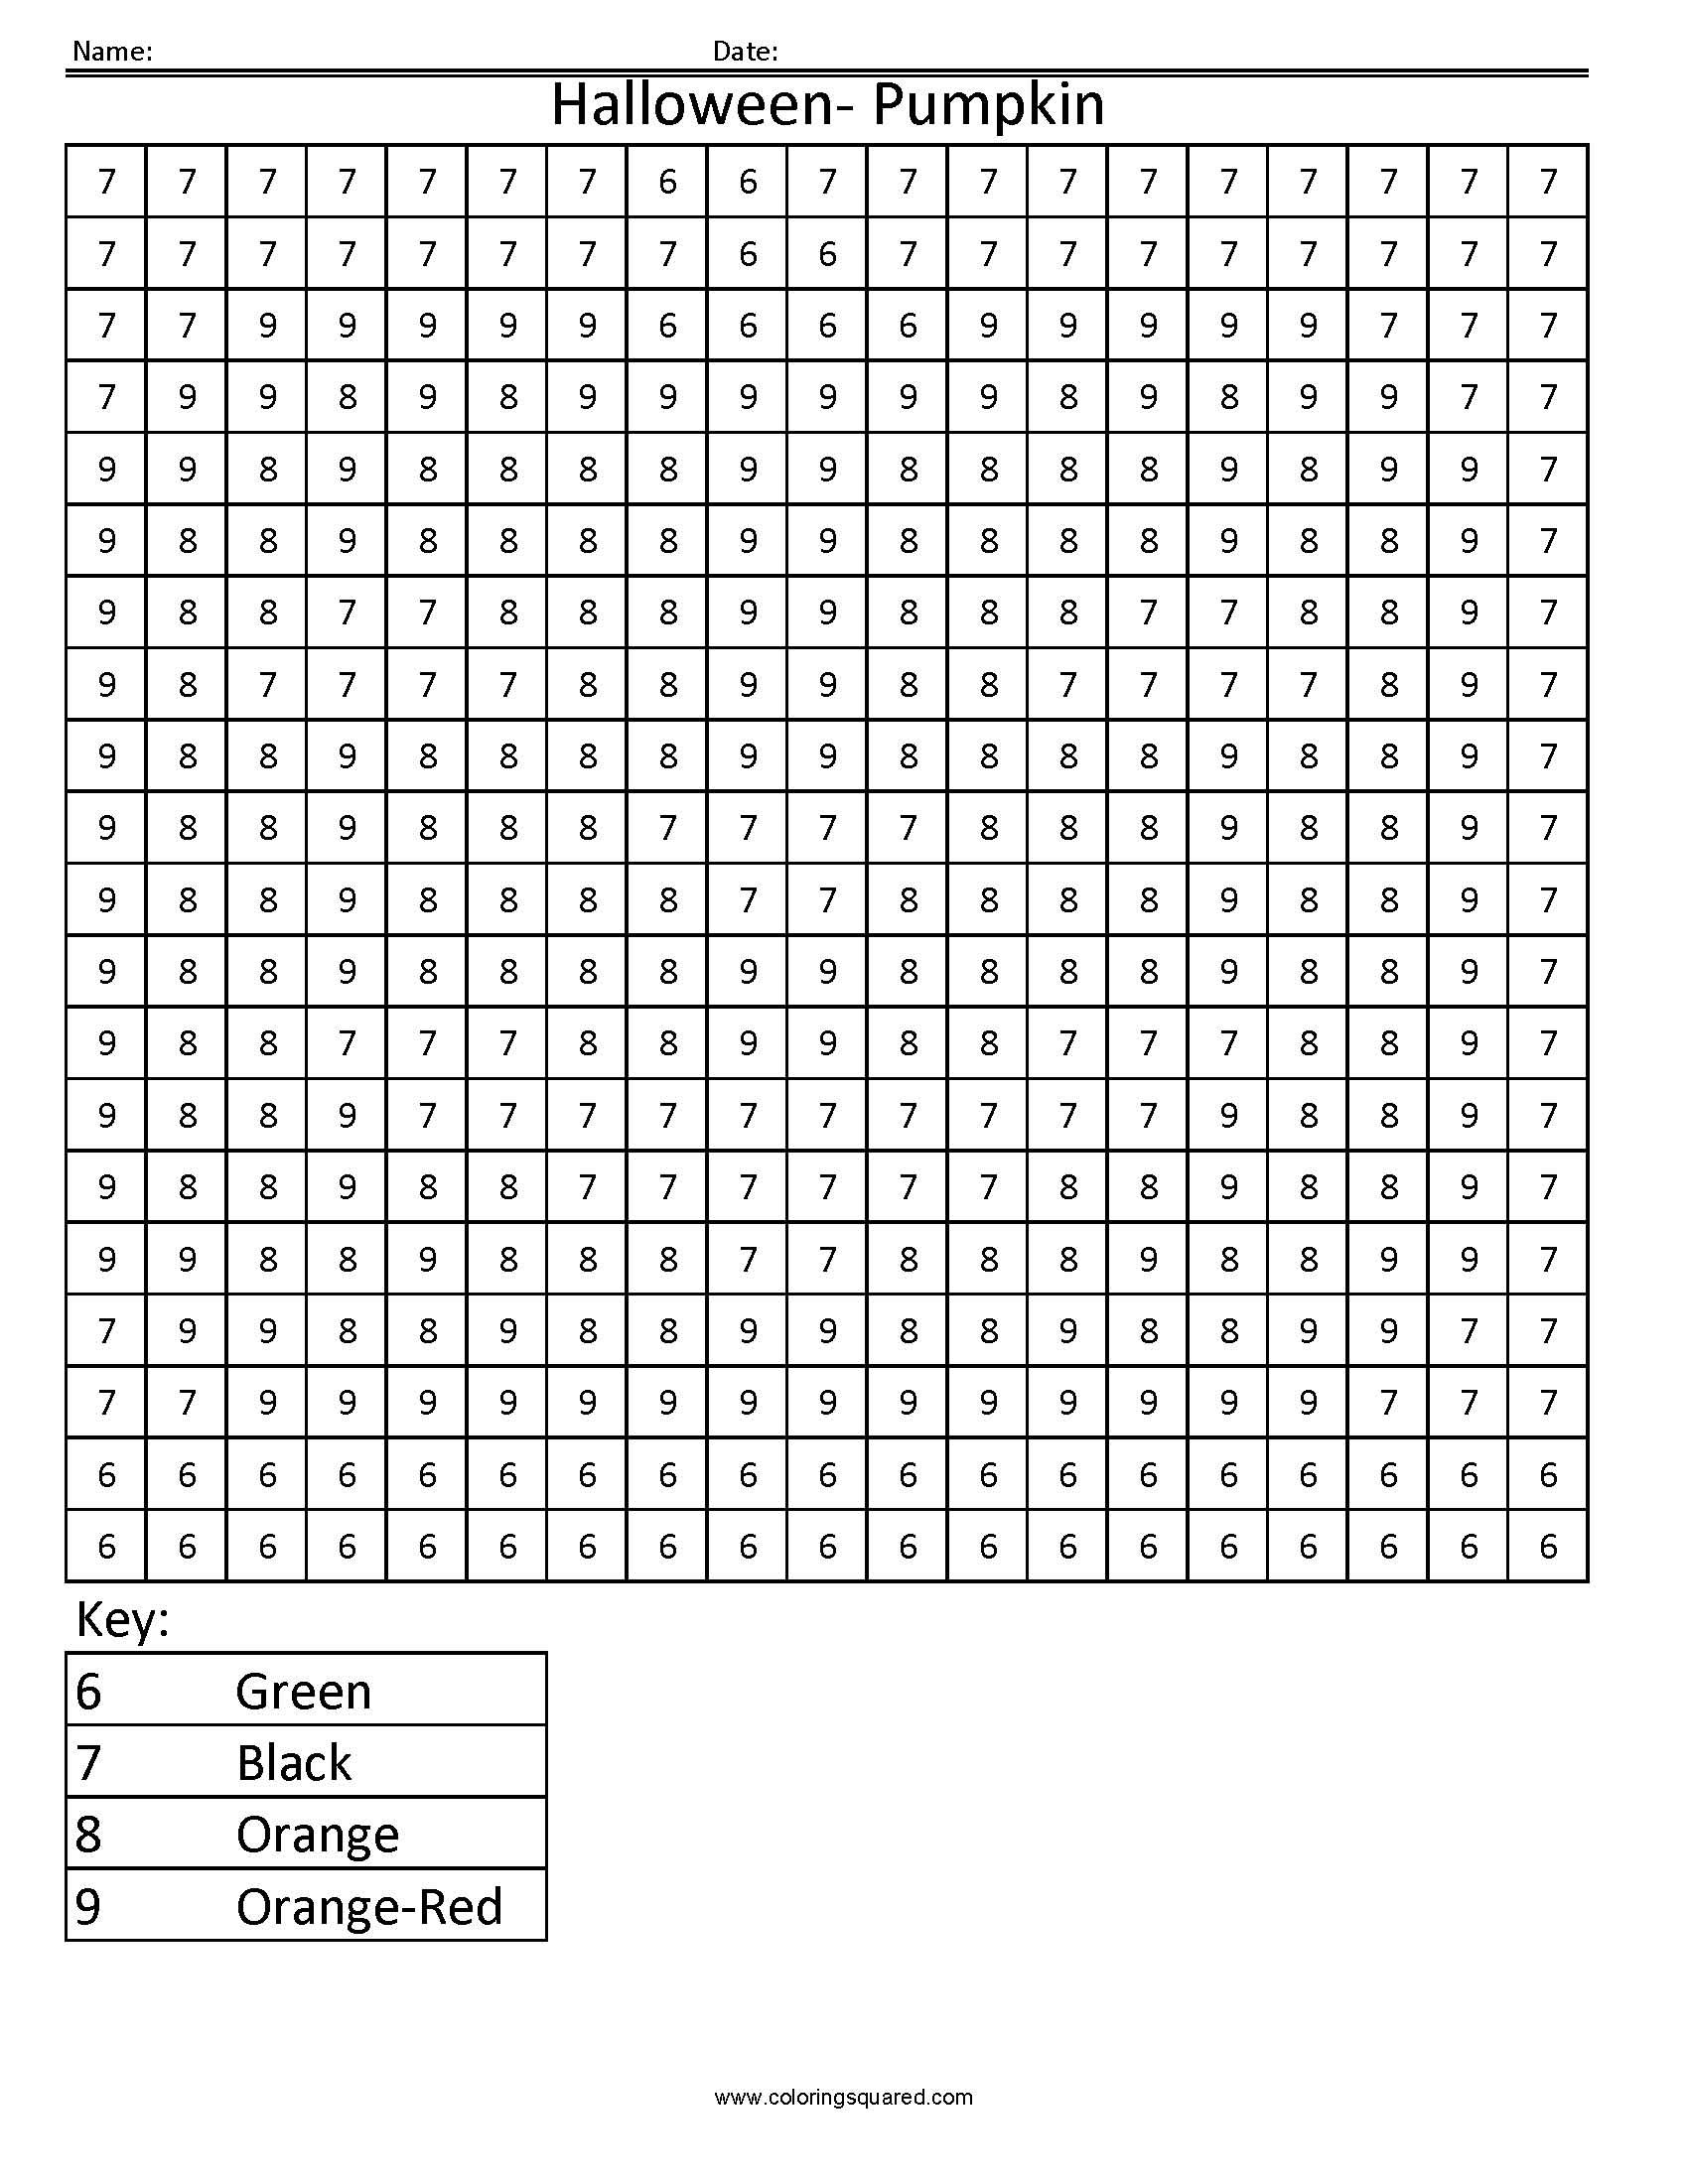 Halloween Pumpkin Holiday Color by Number – Color by Number Addition and Subtraction Worksheets